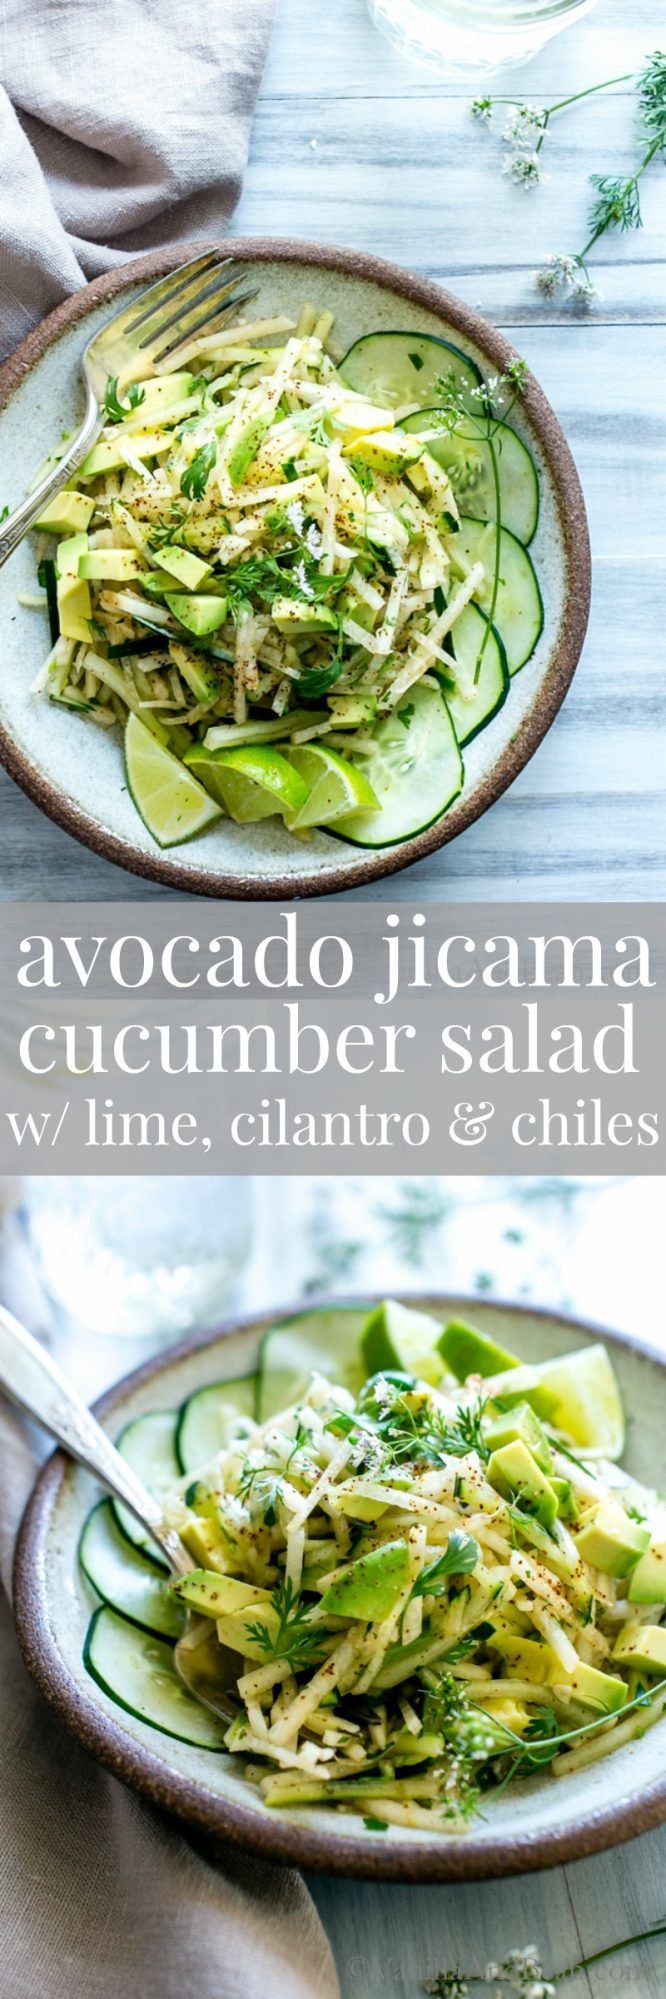 Crunchy and creamy with a hint of spice this hydrating, and nourishing Avocado Jicama Cucumber Salad with lime, cilantro and a pinch chiles will take the edge off Summertime heat. | Vegan & Gluten free